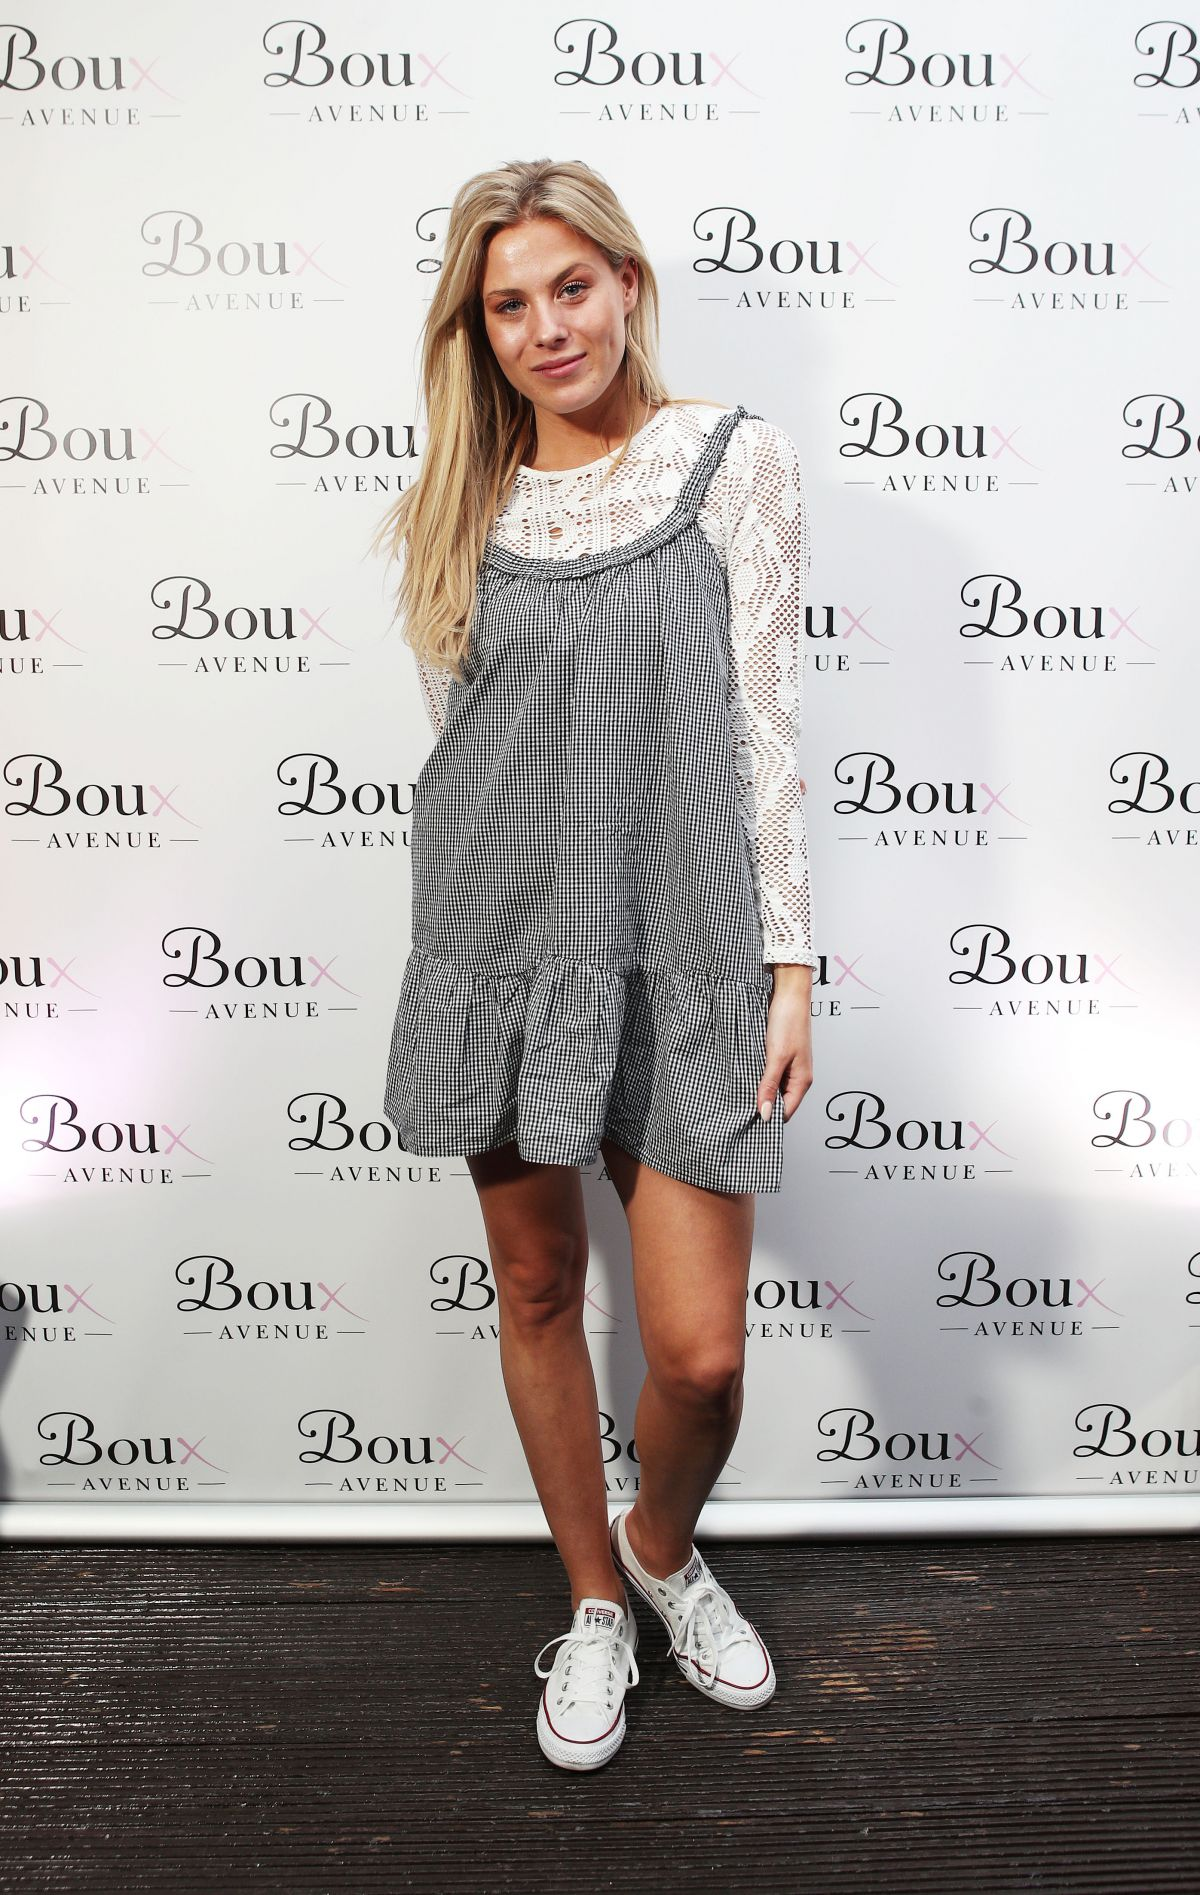 FRANKIE GAFF at Boux Avenue Spring/Summer 2017 Launch in London 04/26/2017